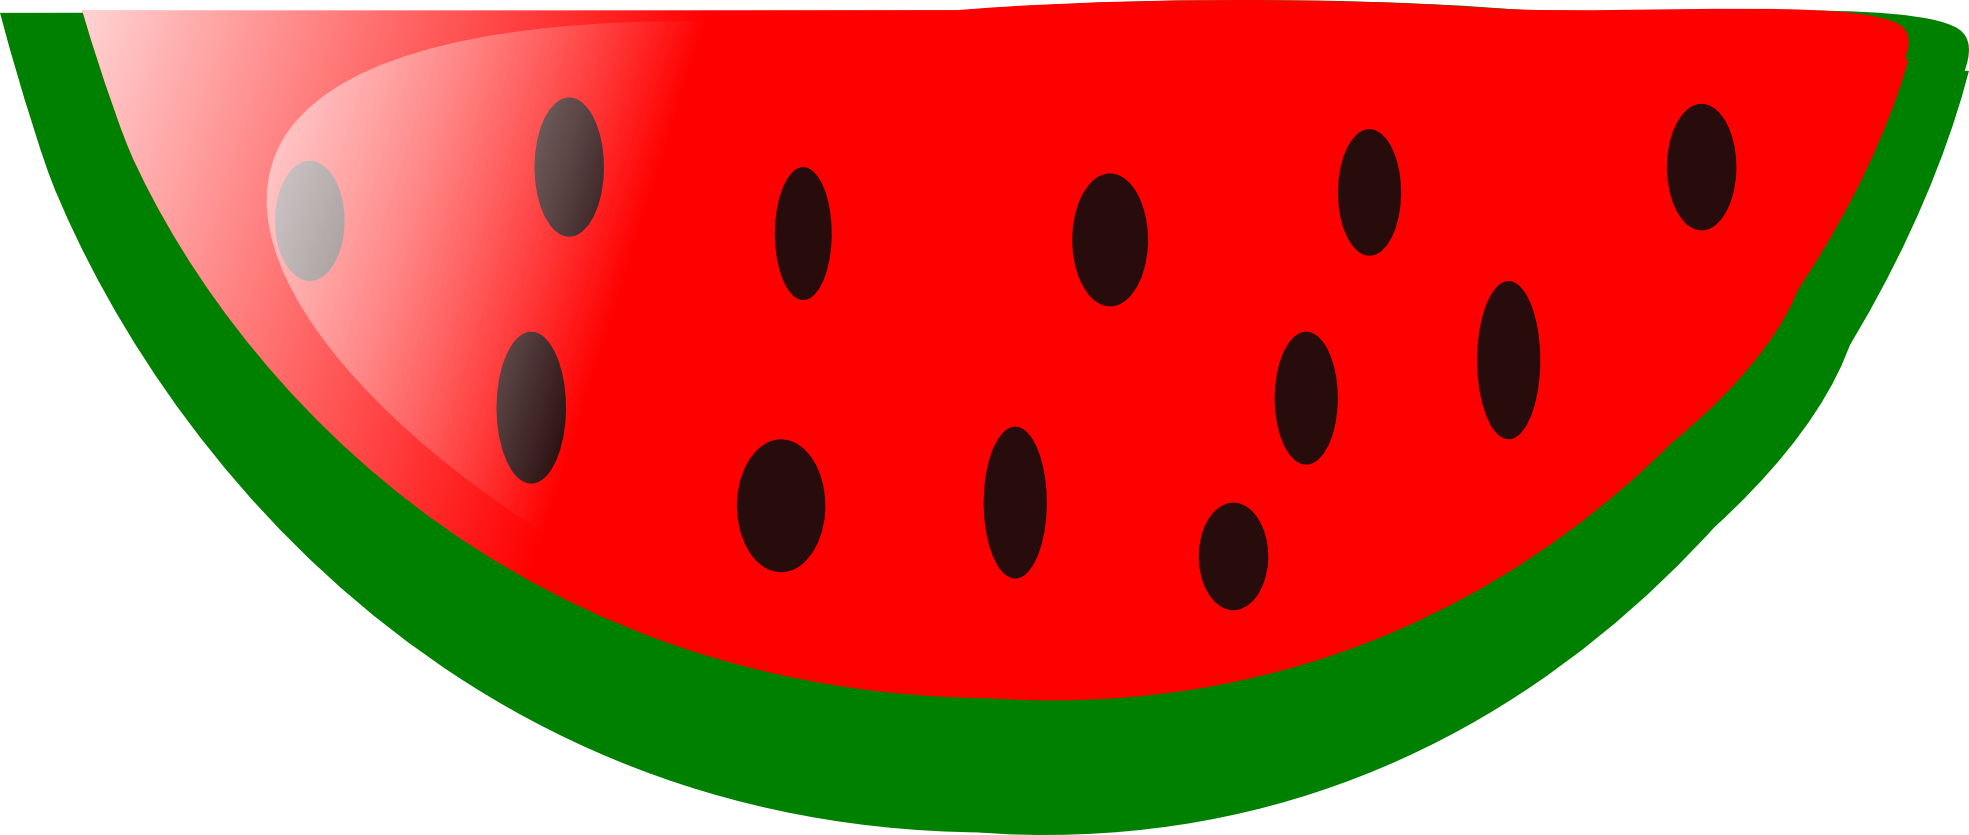 Watermelon clipart black and white free download best